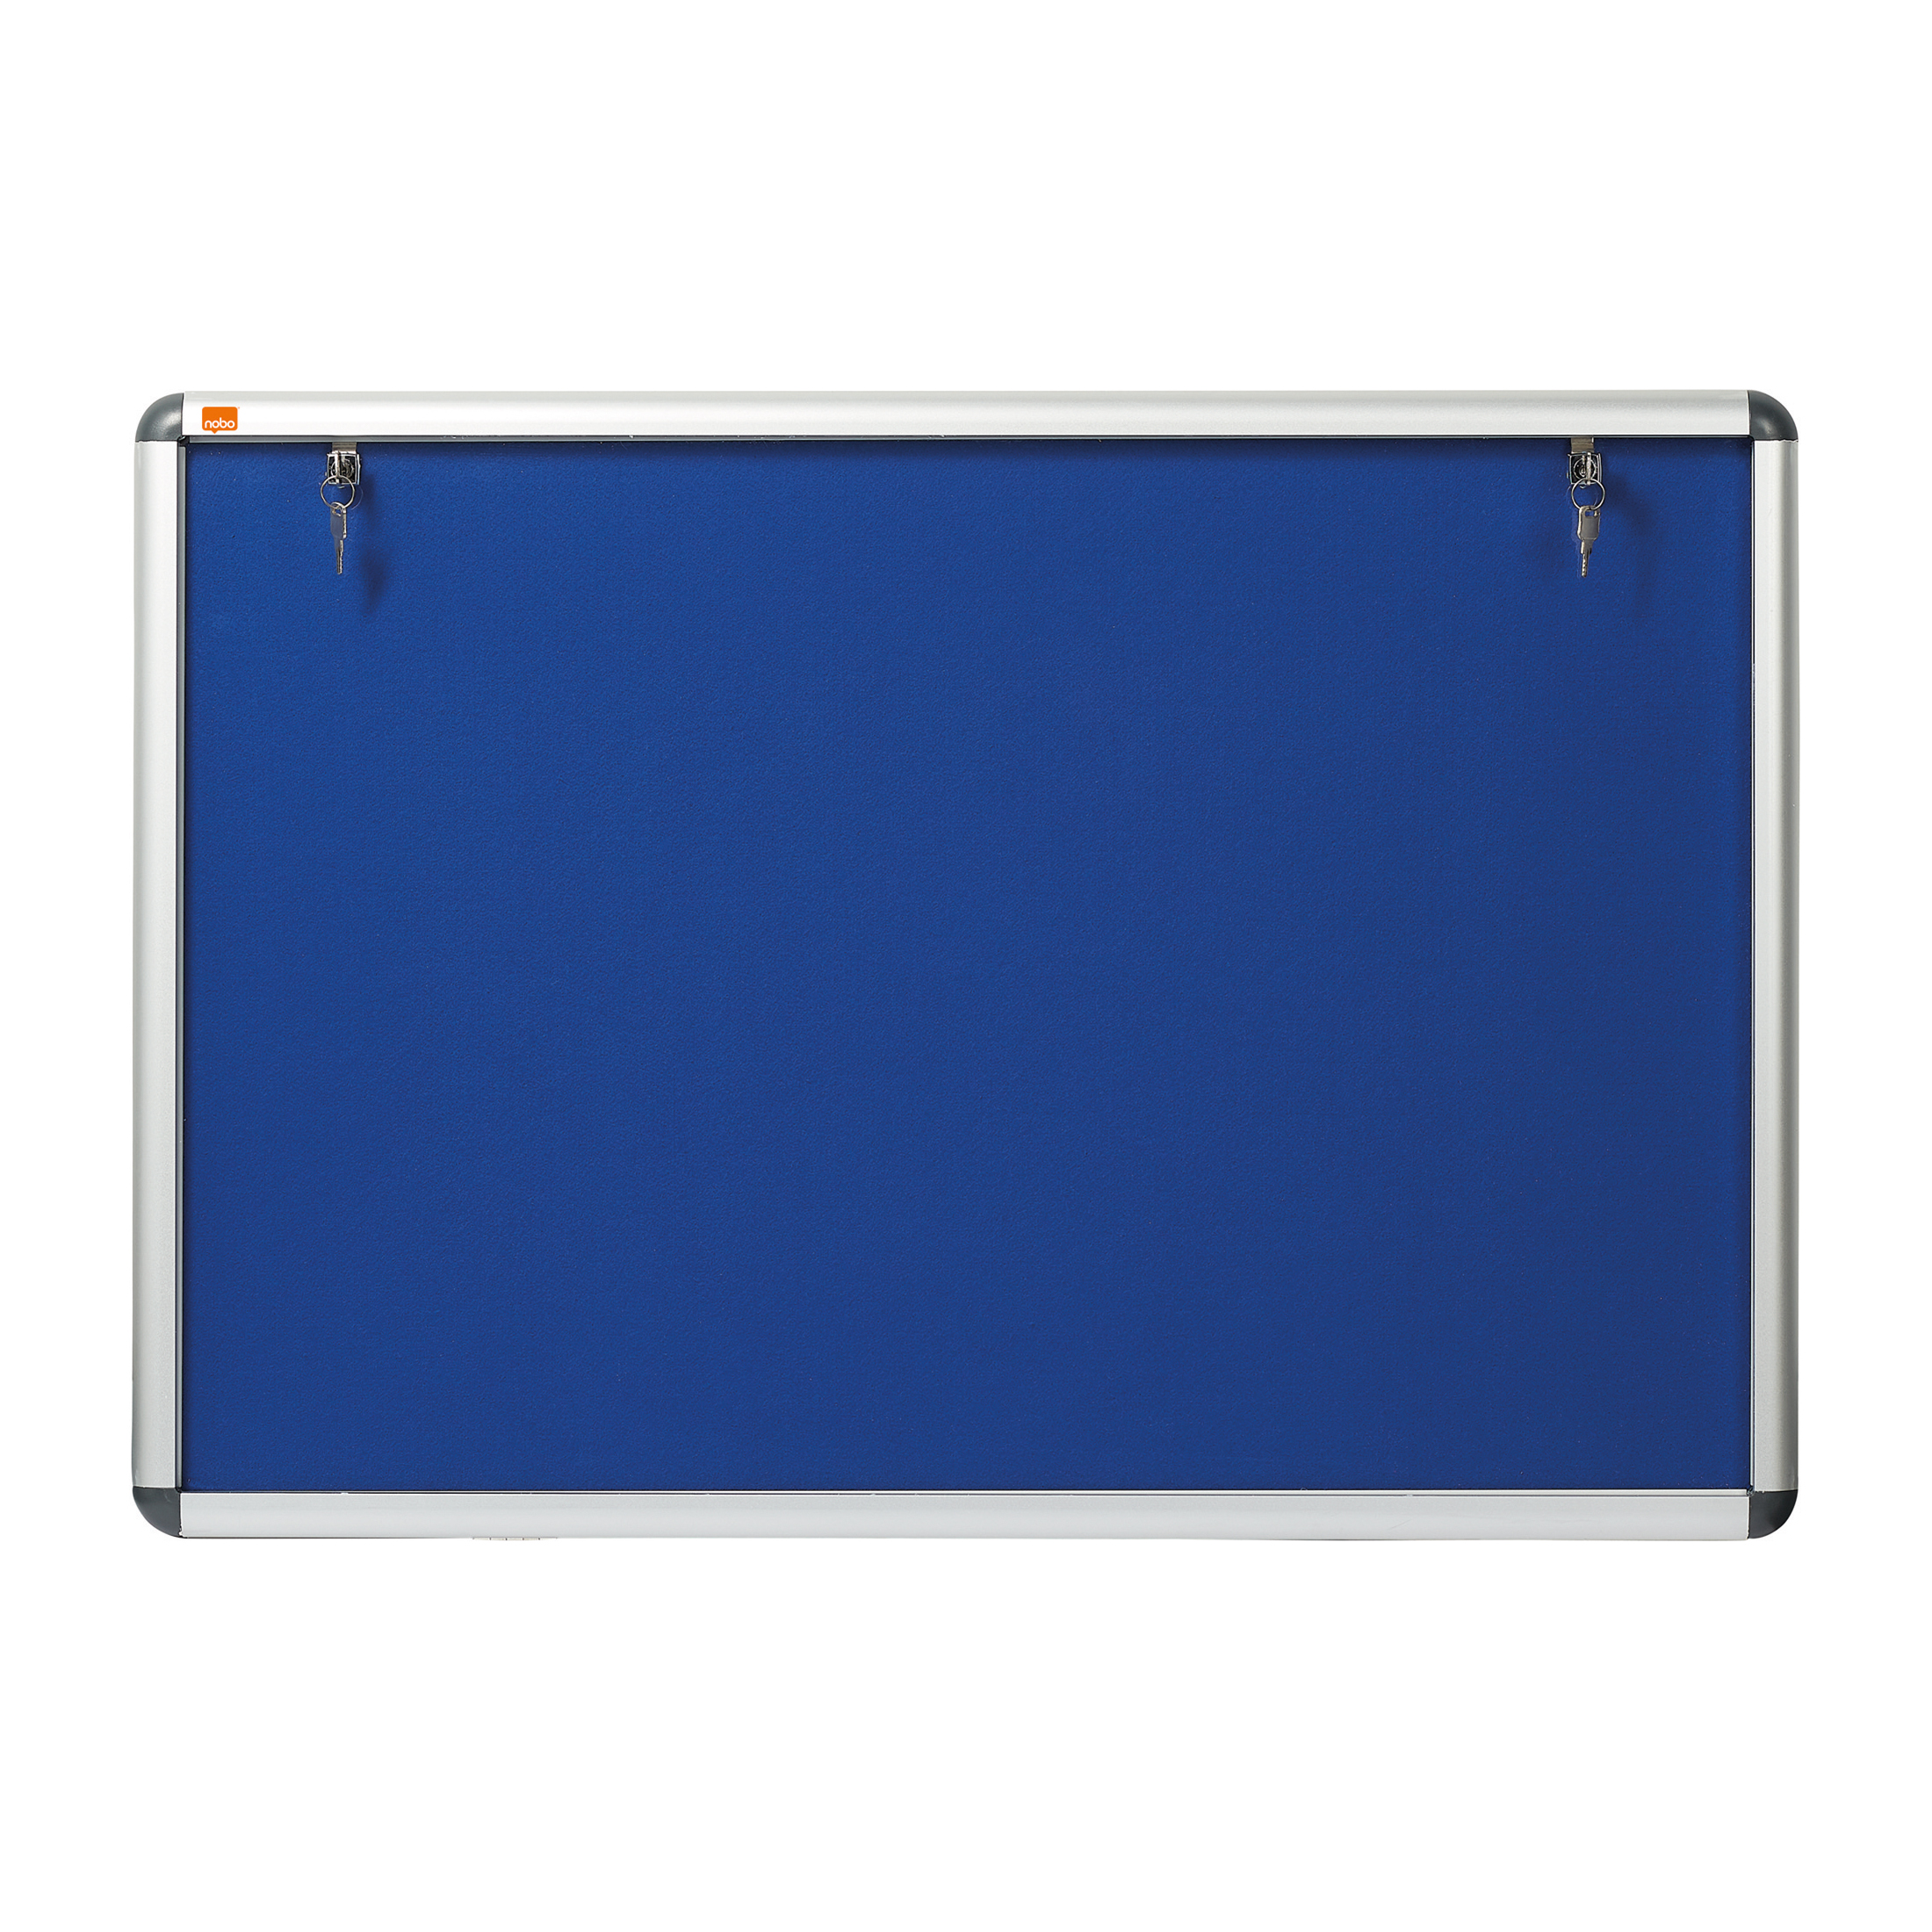 Glazed Nobo Display Cabinet Noticeboard Visual Insert Lockable A1 W1025xH745mm Blue Ref 1902048